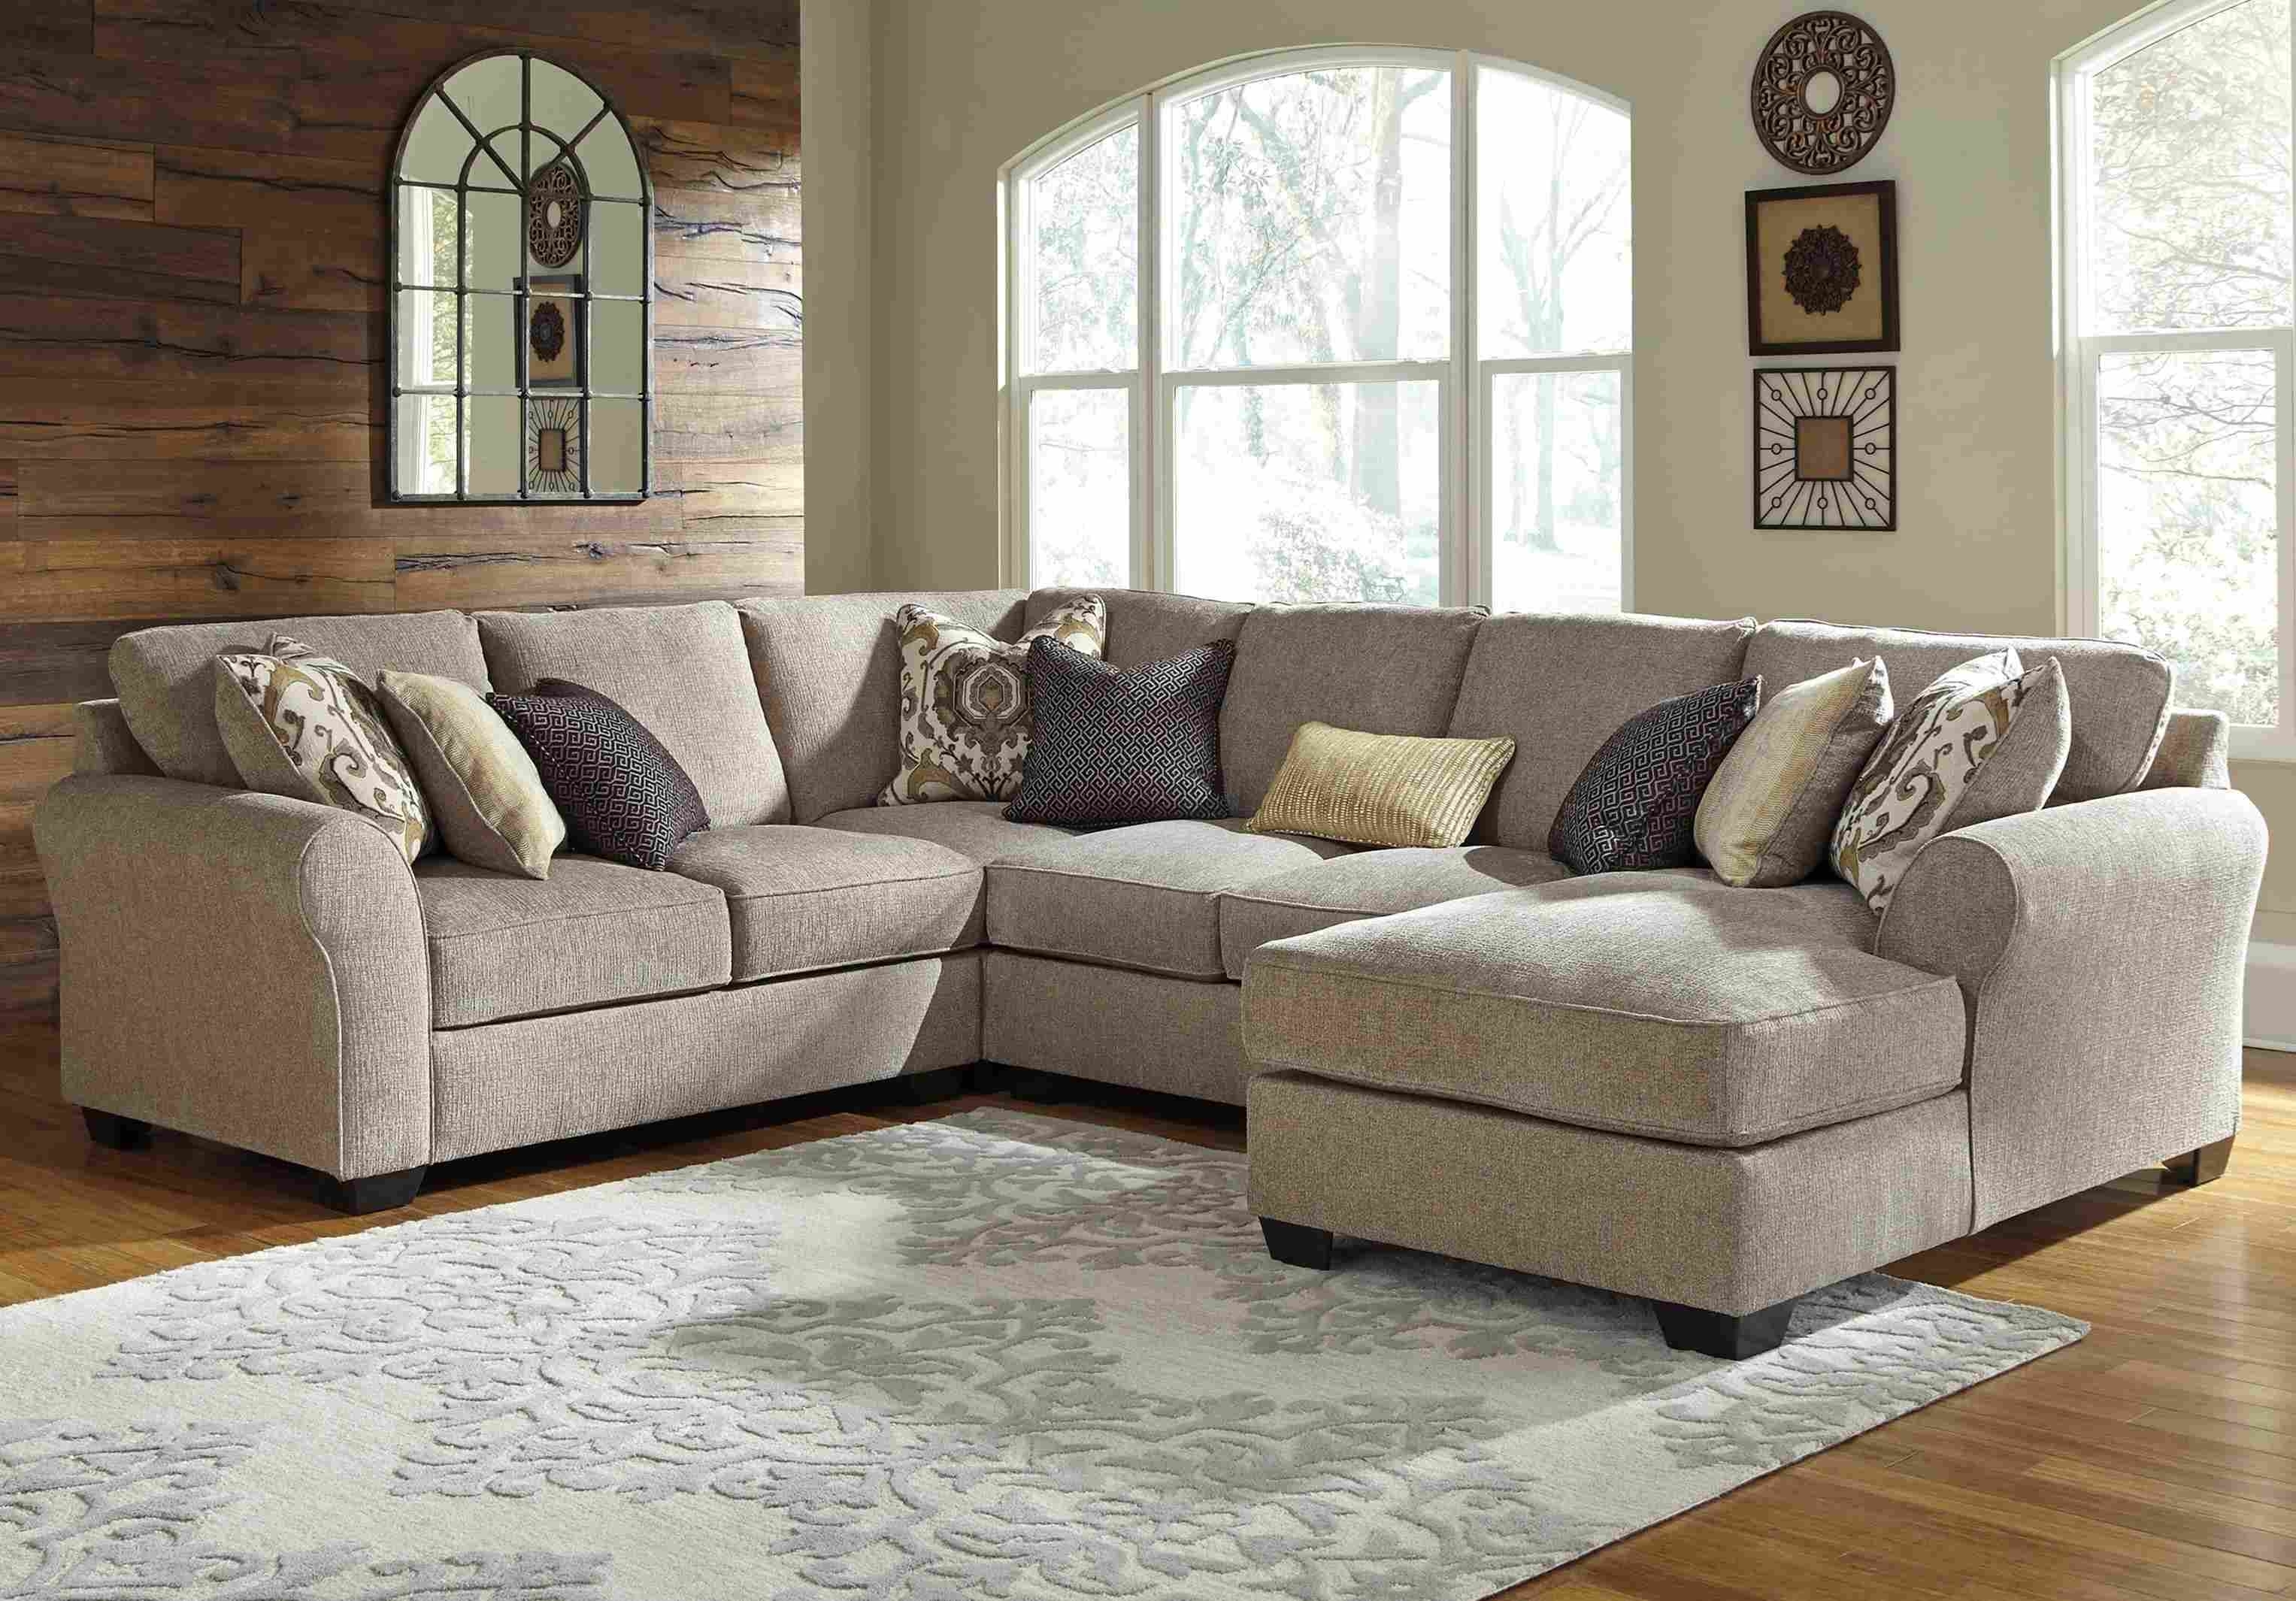 Microfiberctional Sofa With Chaise Amazing Photo Inspirations regarding Arrowmask 2 Piece Sectionals With Laf Chaise (Image 23 of 30)